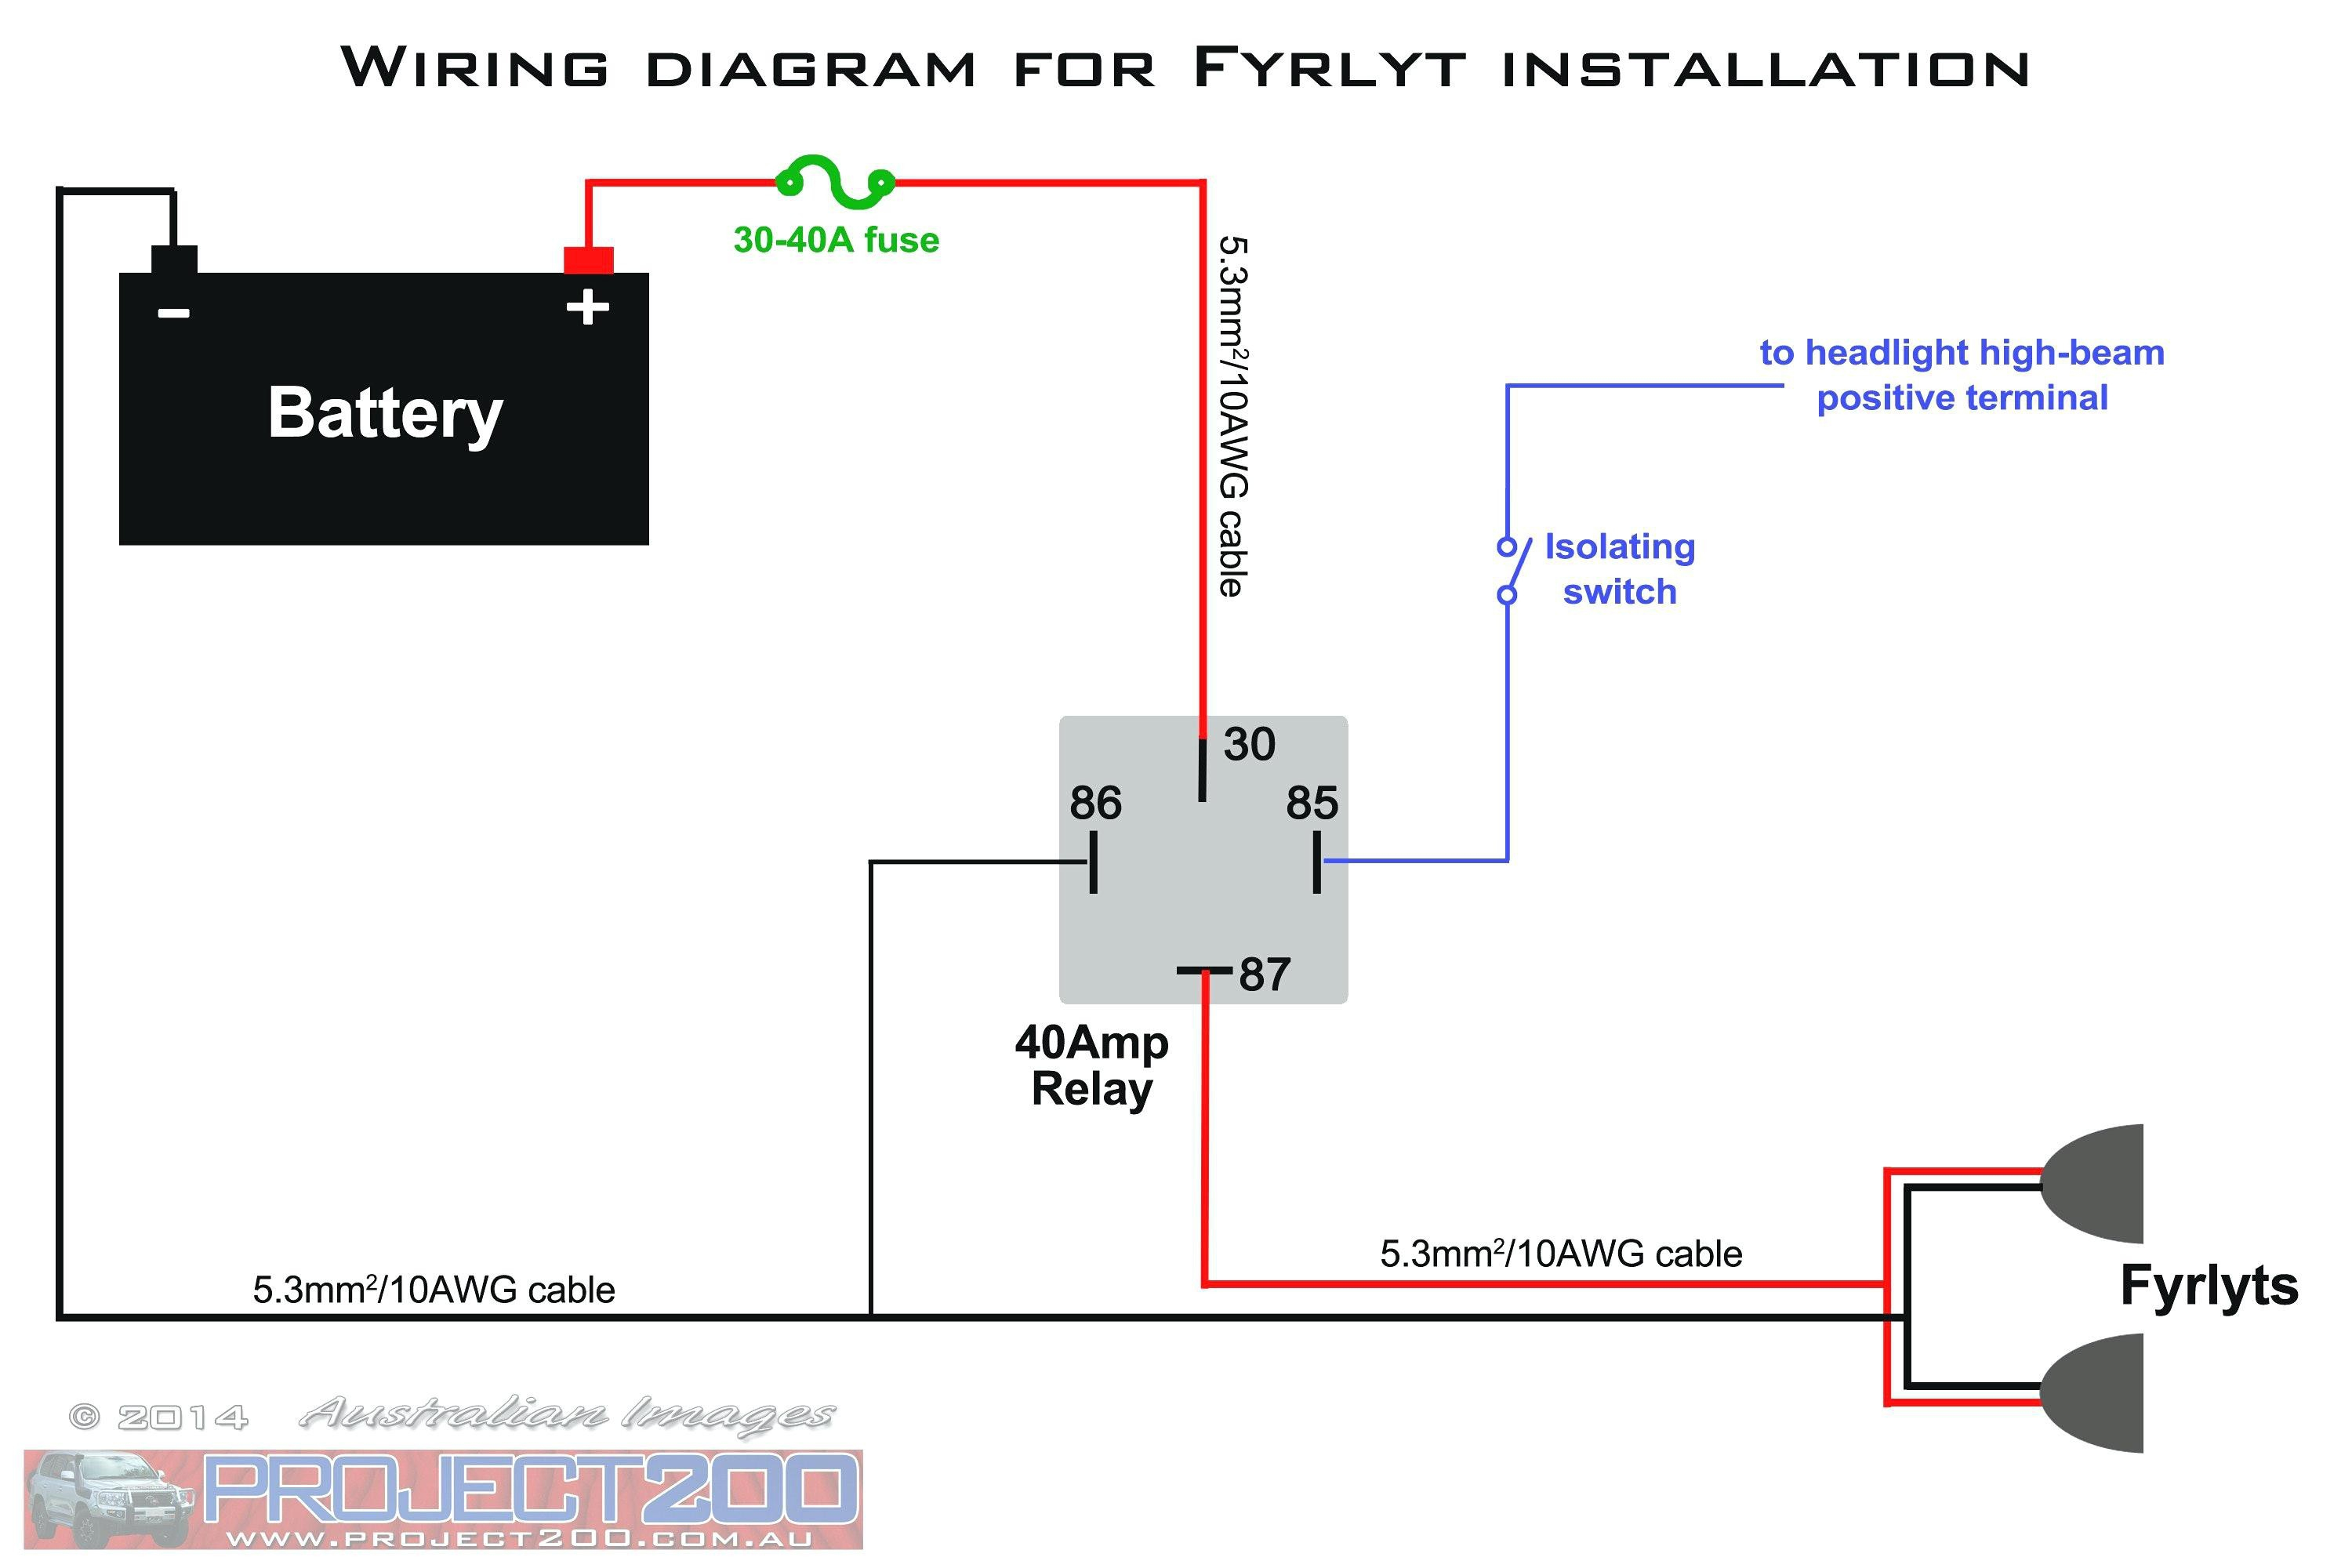 Nippondenso 3 Wire Flasher Wiring Diagram | Wiring Diagram - 3 Prong Flasher Wiring Diagram